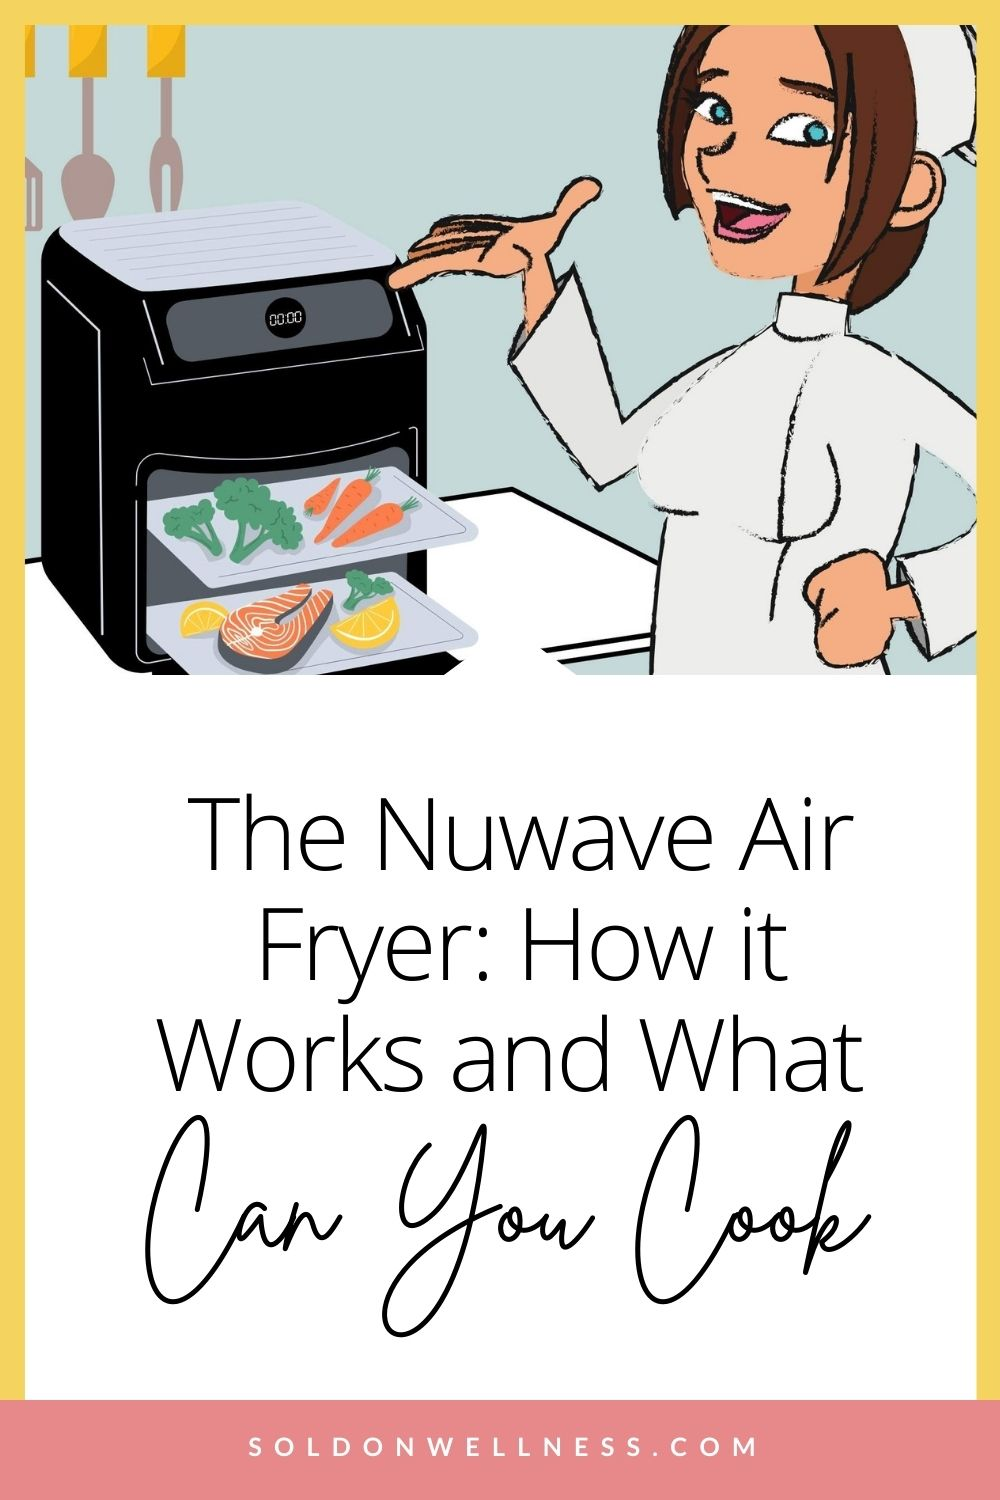 What Is A Nuwave Air Fryer